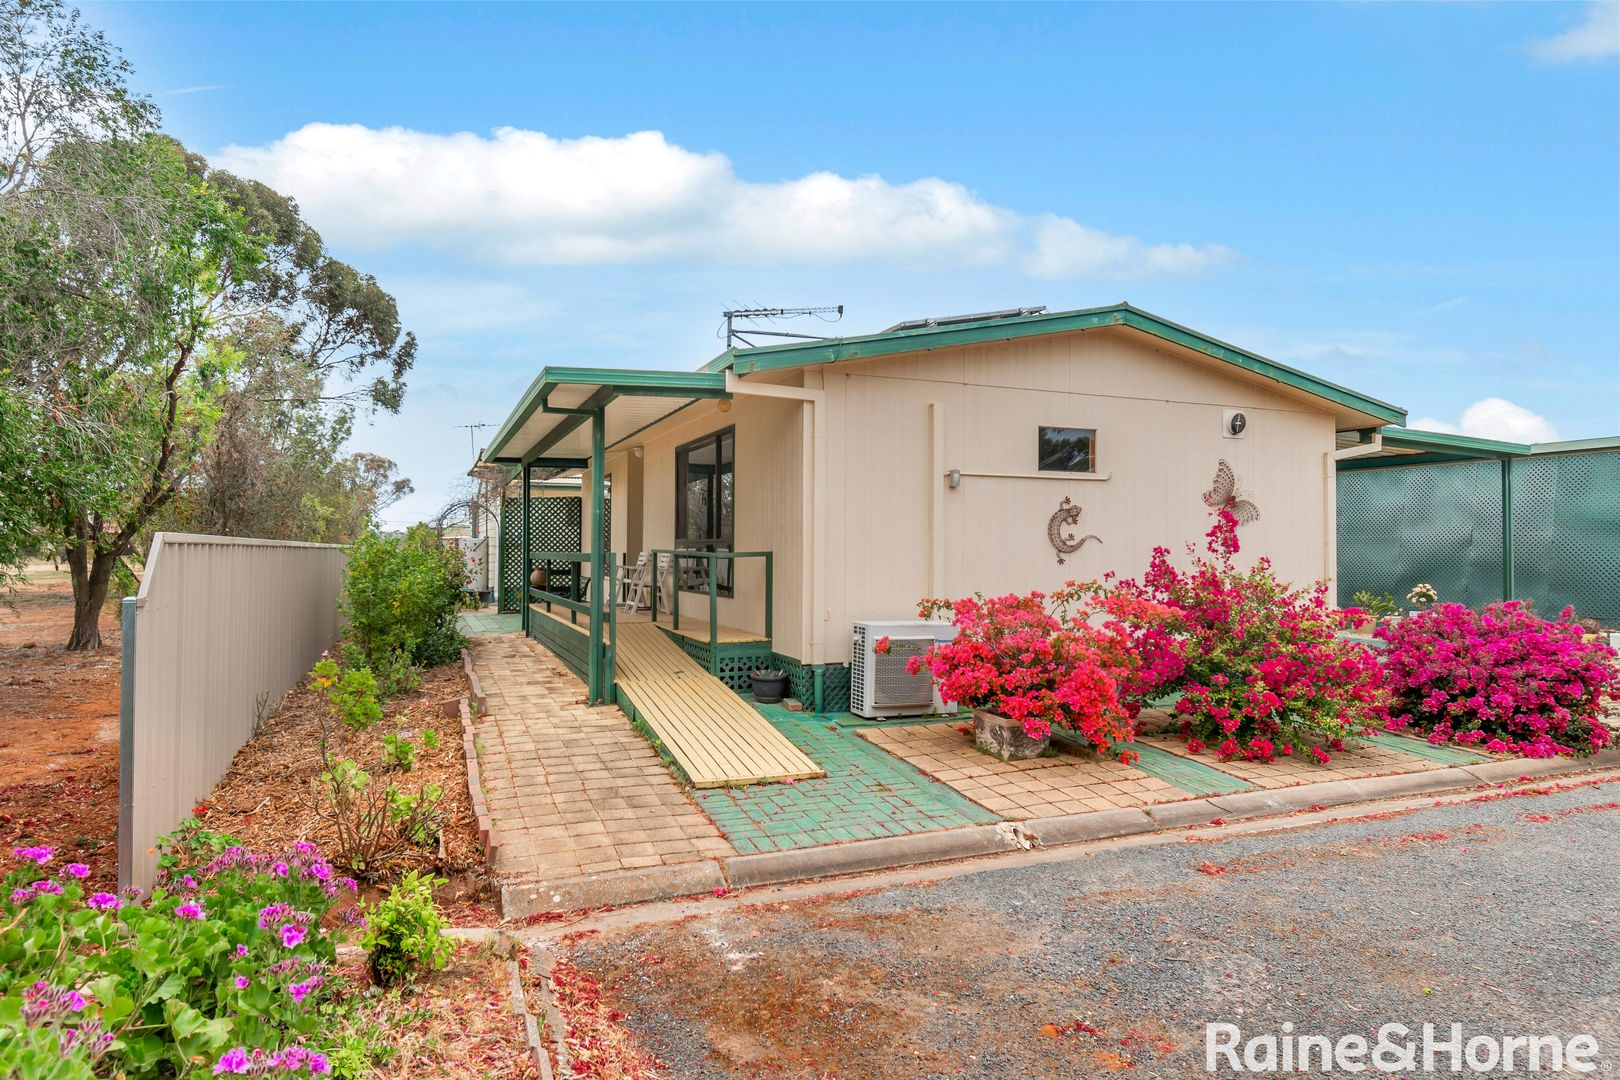 161/36 Hillier Road, Hillier SA 5116, Image 0